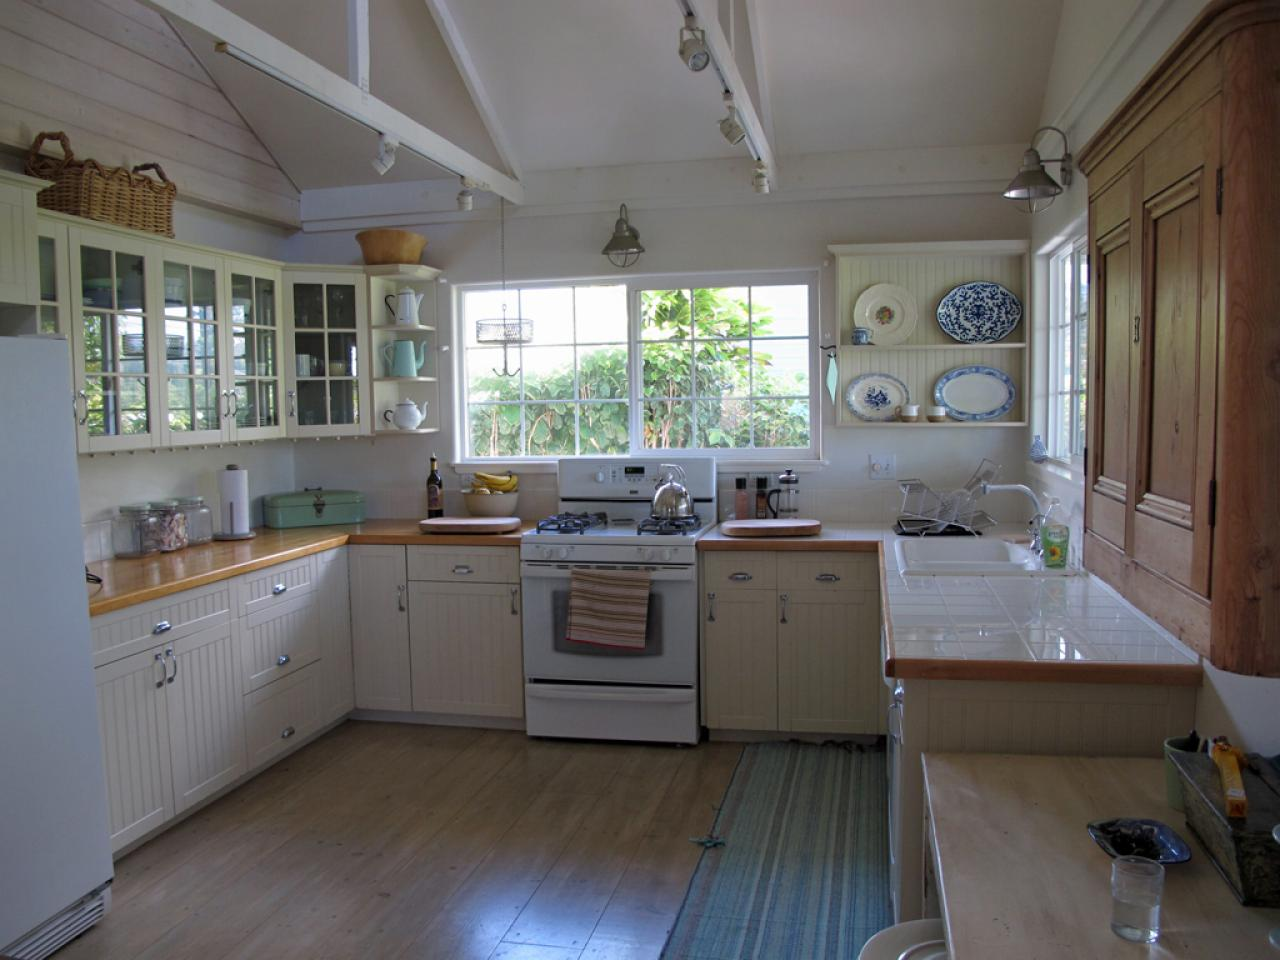 vintage kitchen decorating ideas SBOQOBW